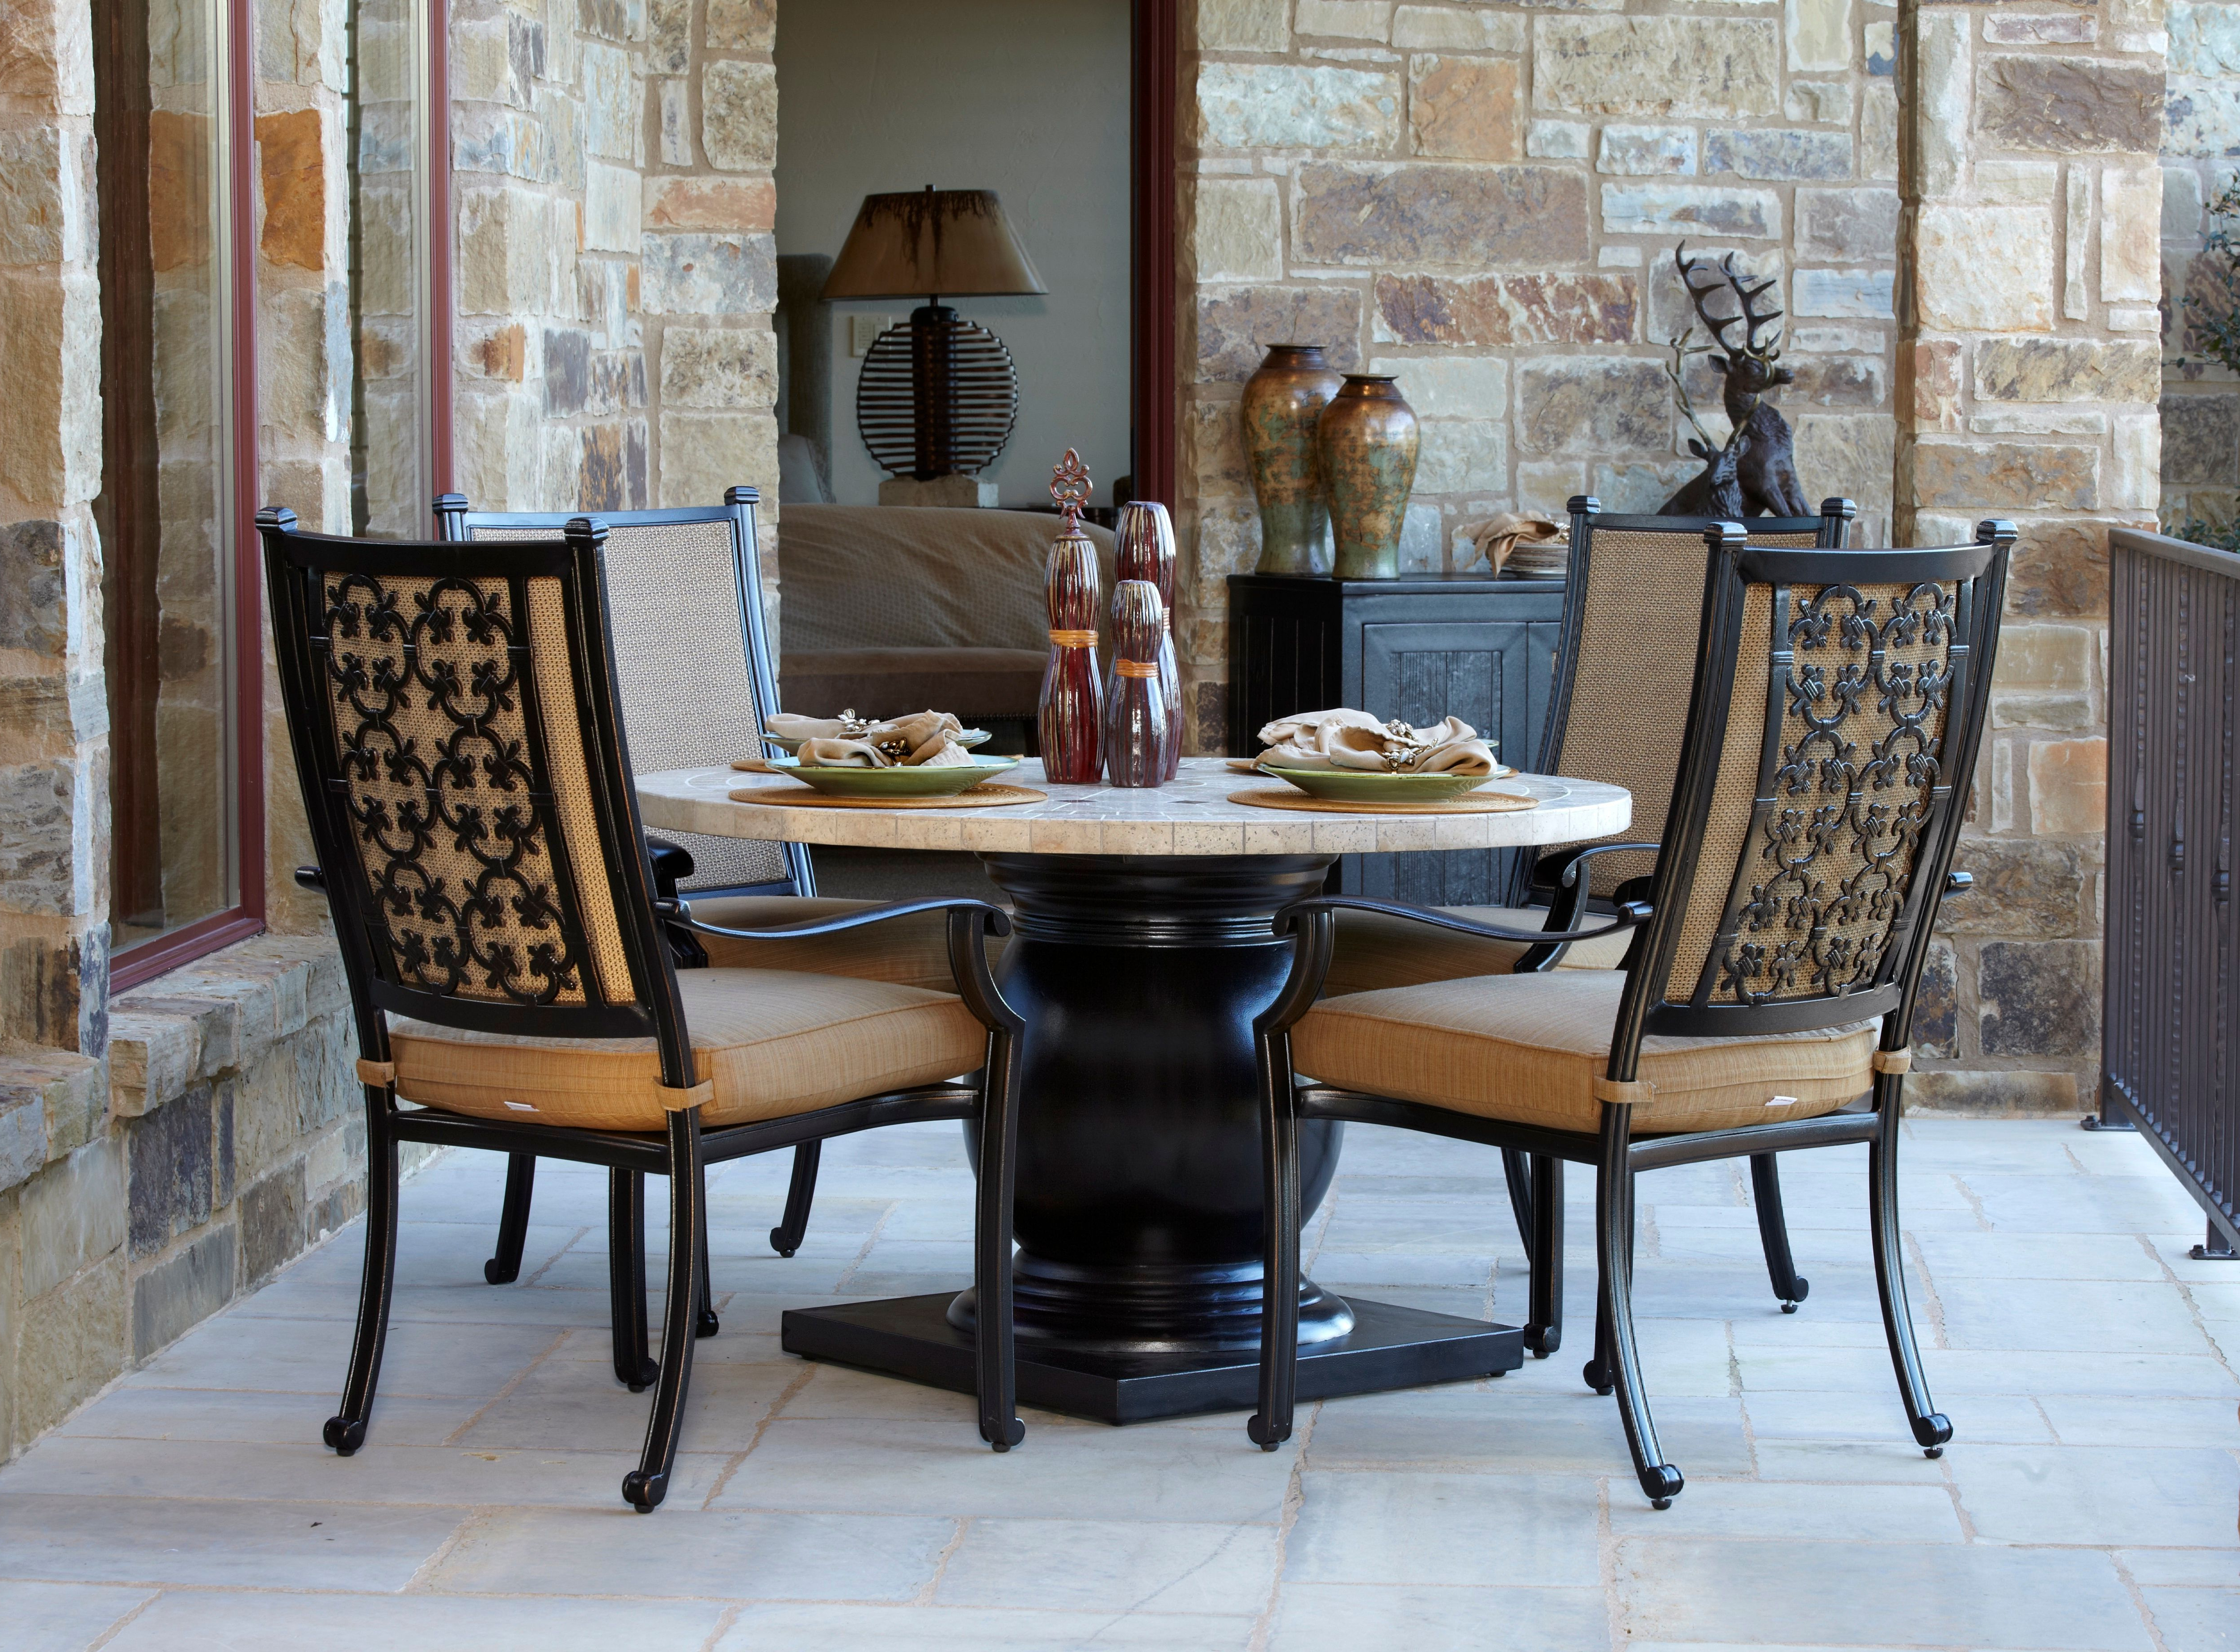 Tivoli 5 Piece Sling Dining Set Throughout Most Up To Date 5 Piece Dining Sets (View 20 of 25)